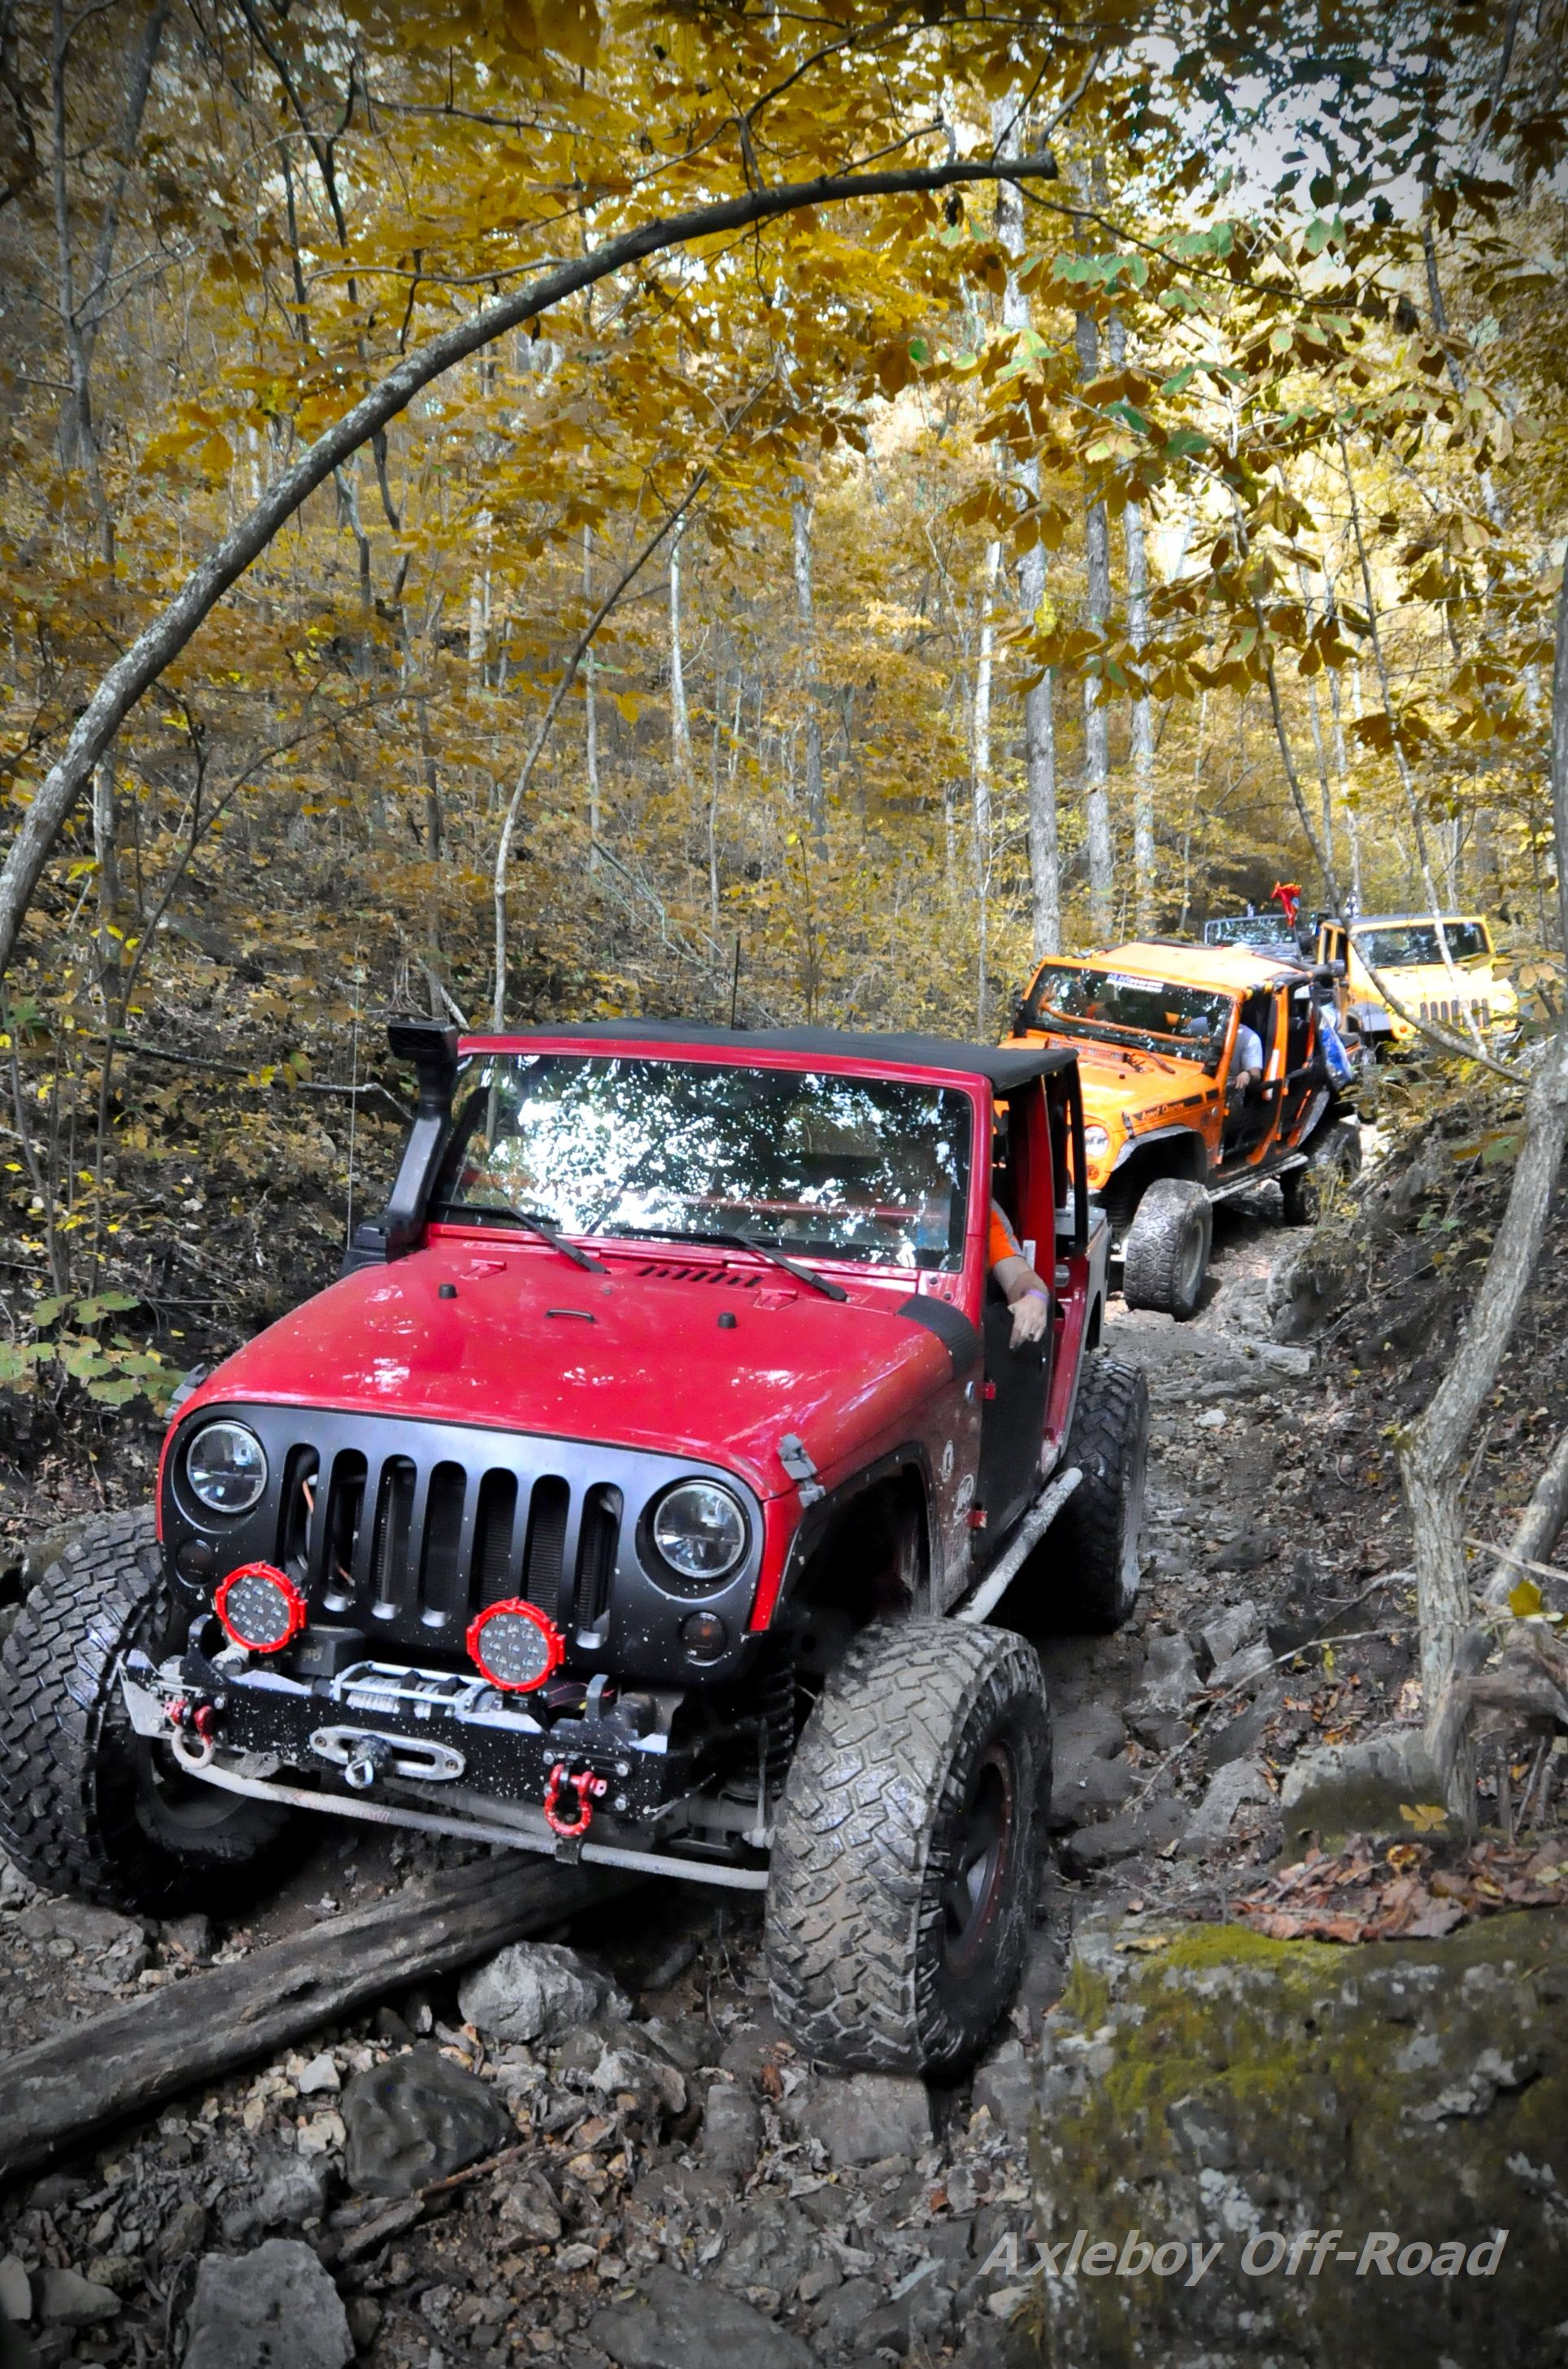 Jeep Trails Fall Colors Are In Full Bloom Along The Jeep Trails Axleboy